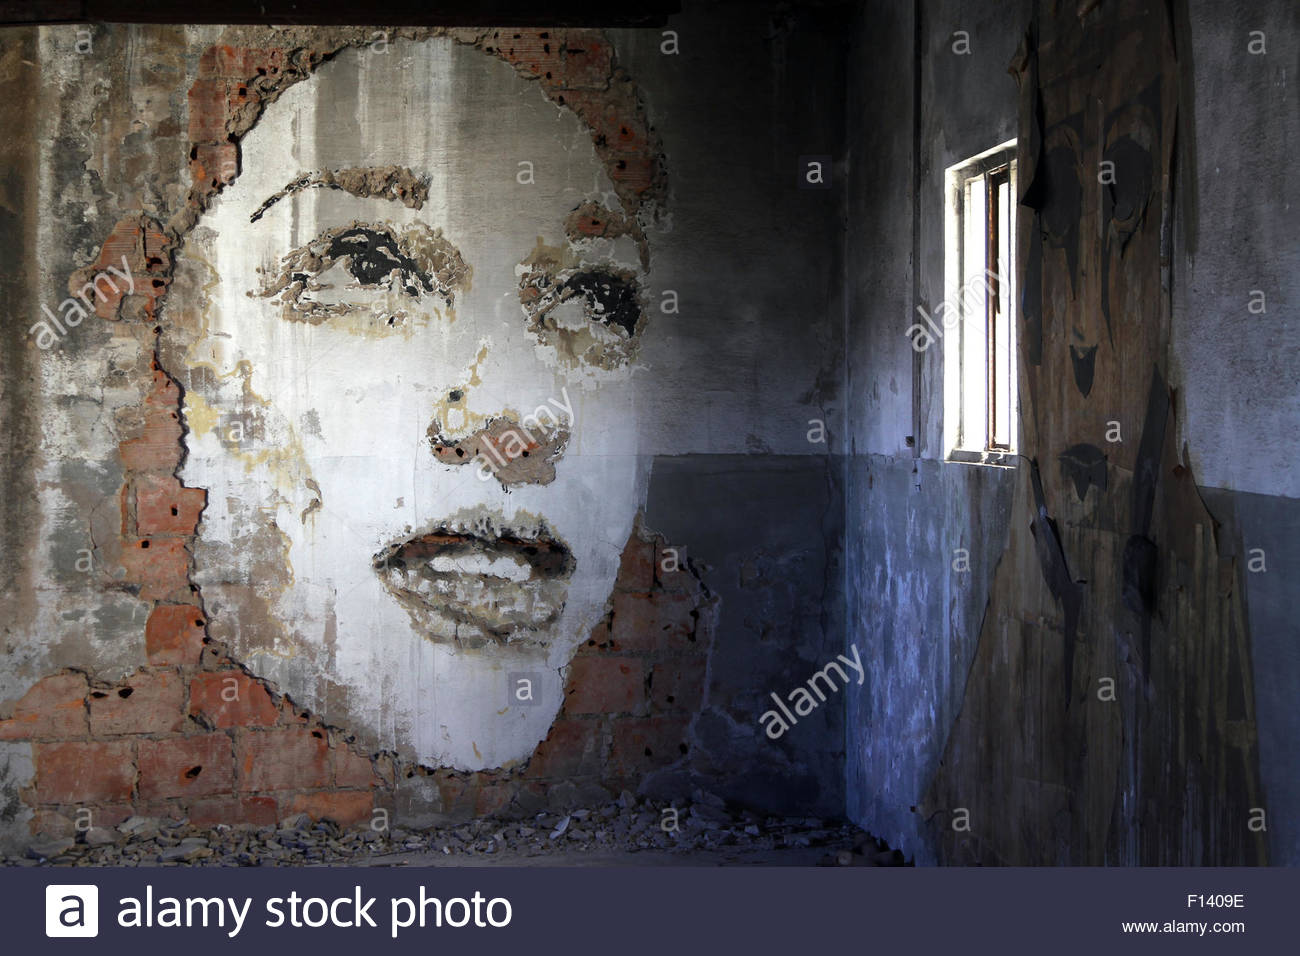 Porto, Portugal. 20th Aug, 2015. Graffiti on the walls of an abandoned hat factory which is now given over to graffiti - Stock Image